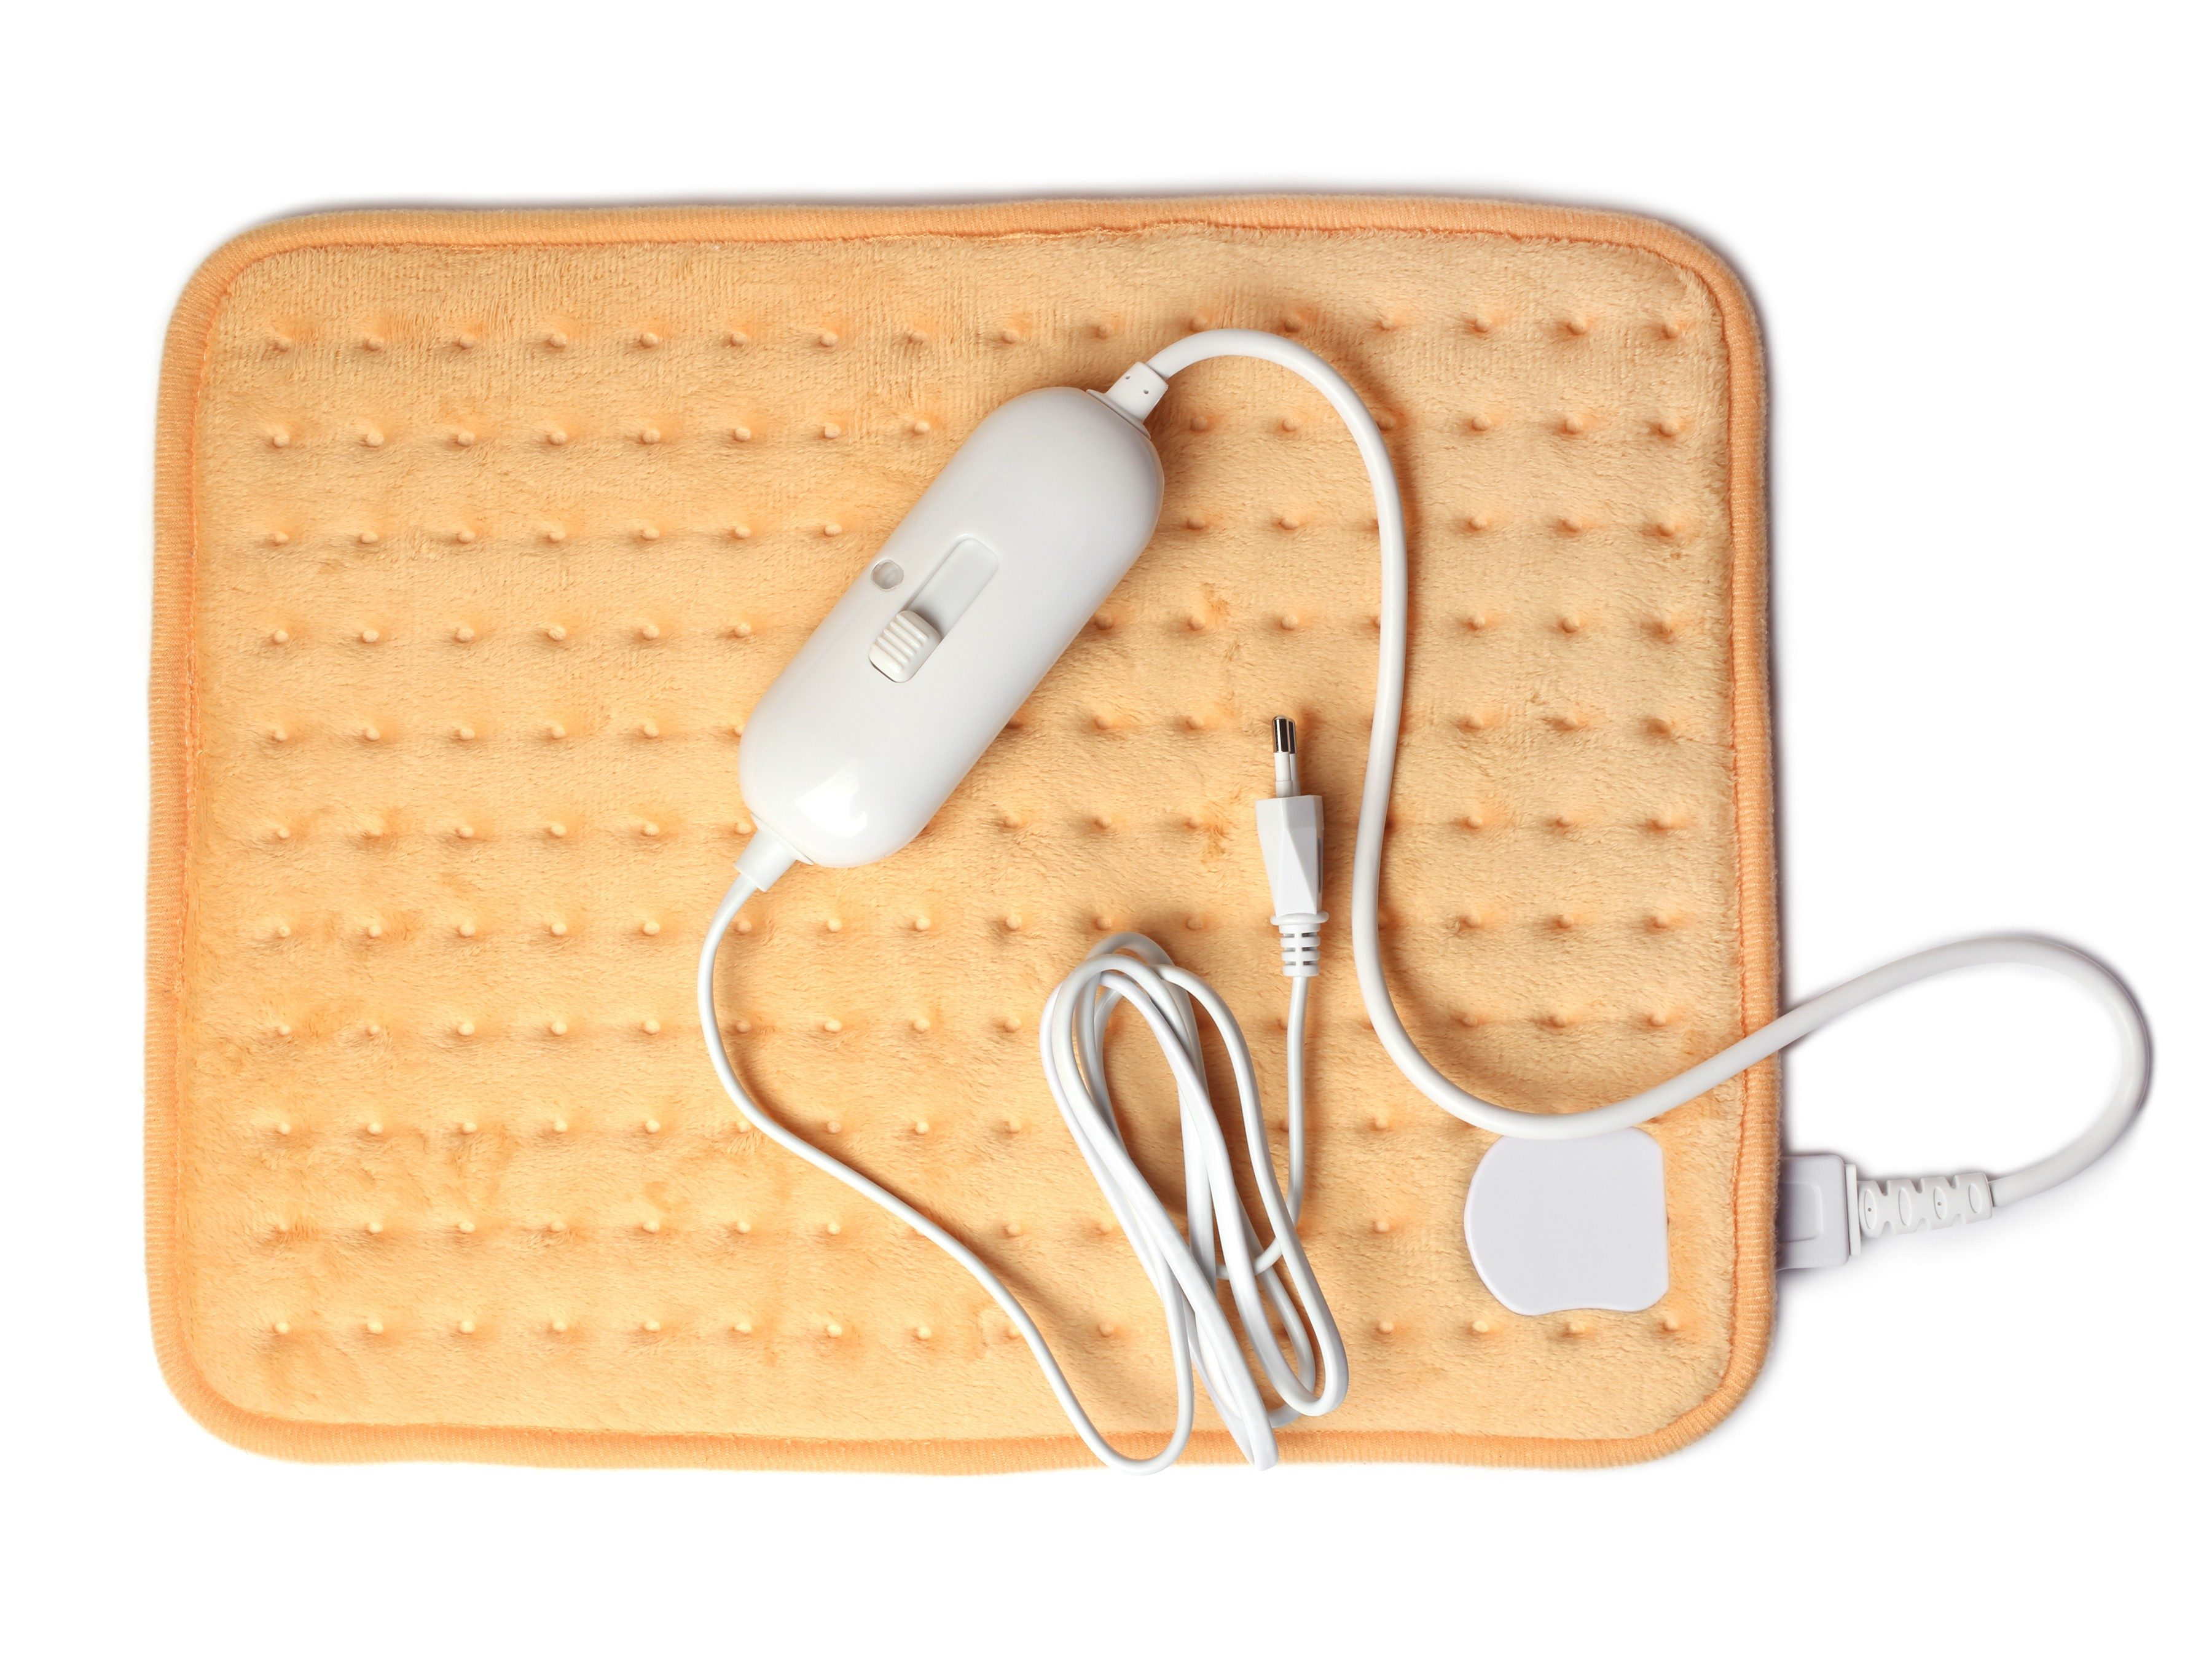 5. Use a heating pad to relieve sore muscles.